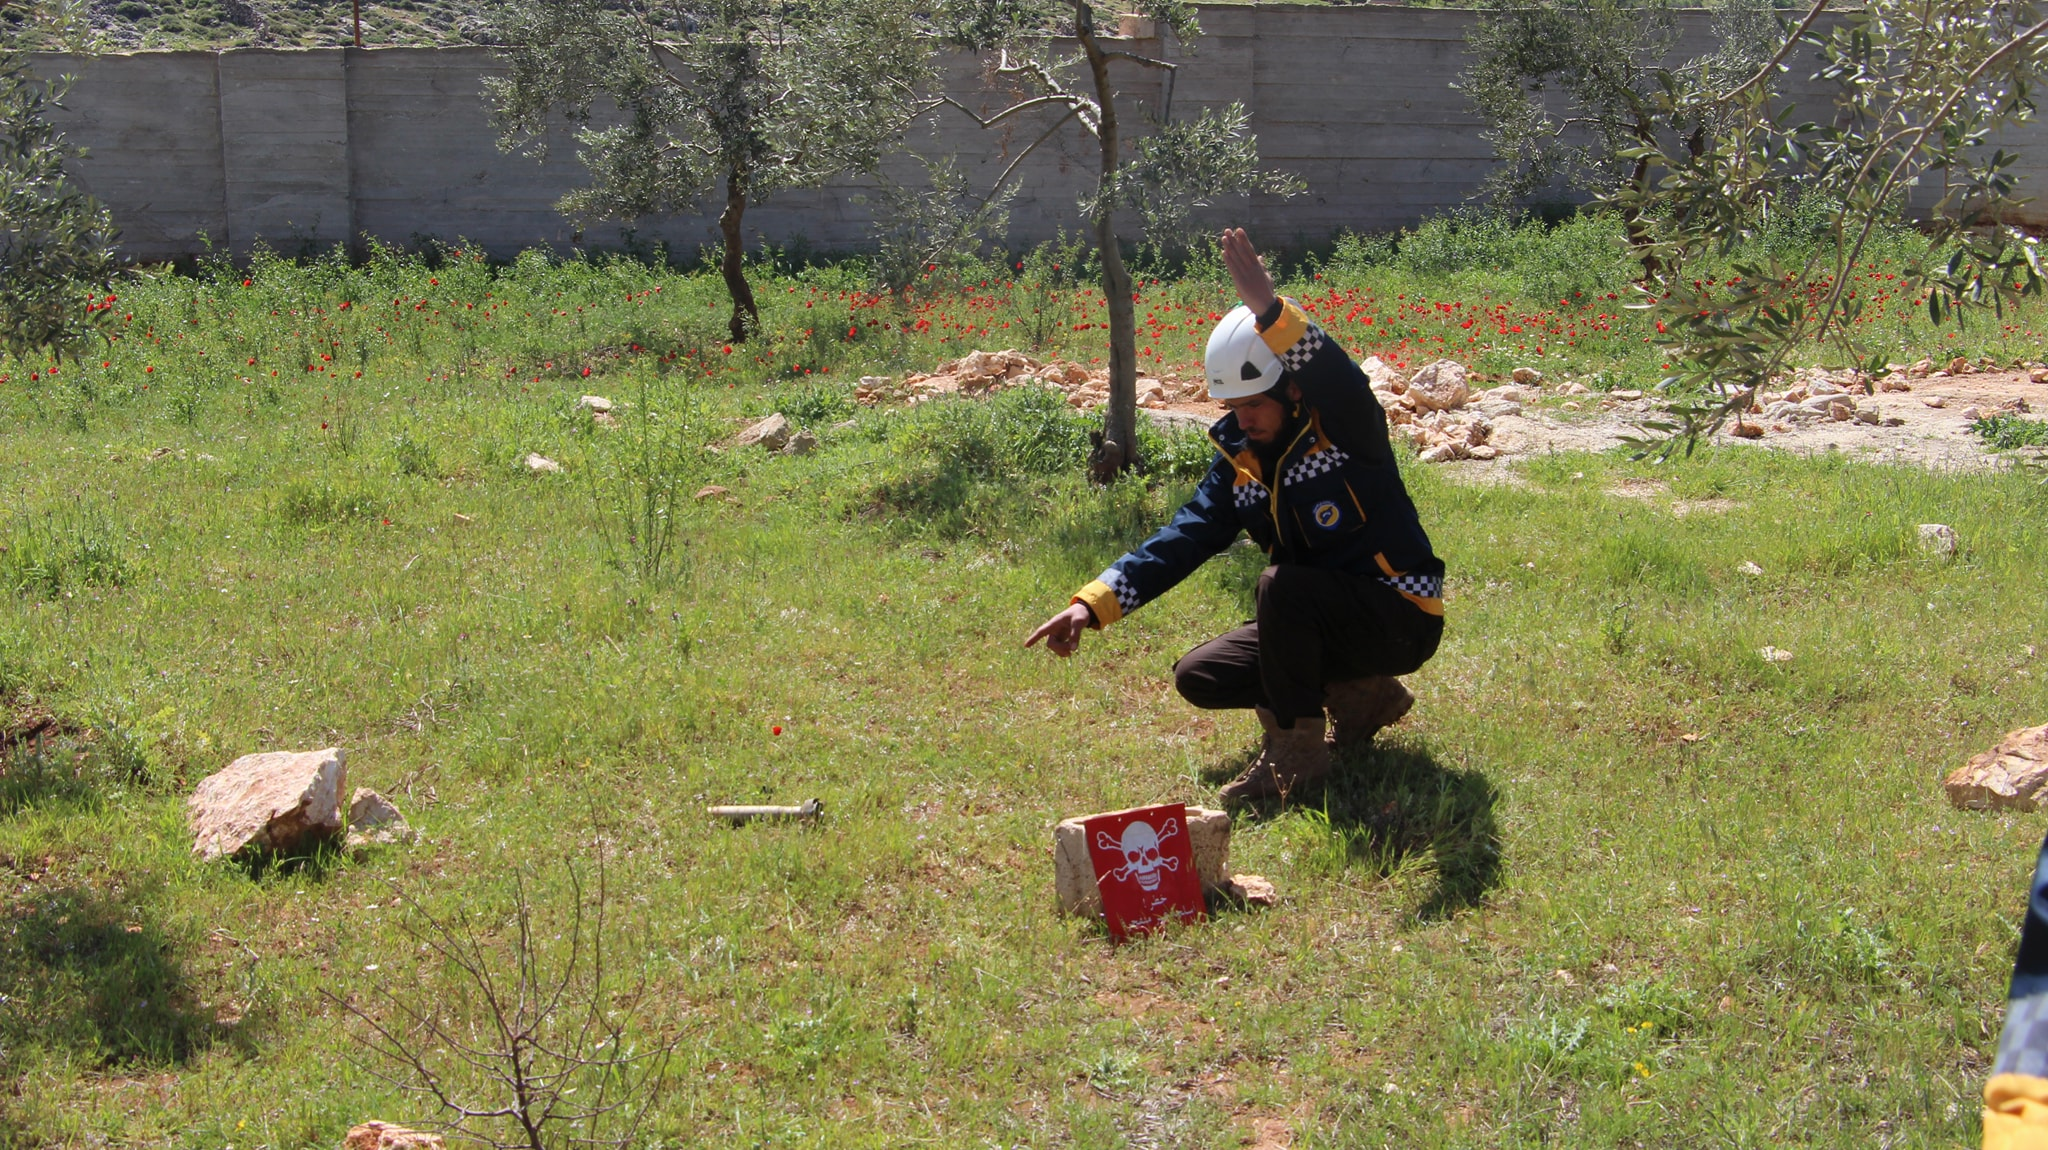 A White Helmentt is locating an unexploded munition